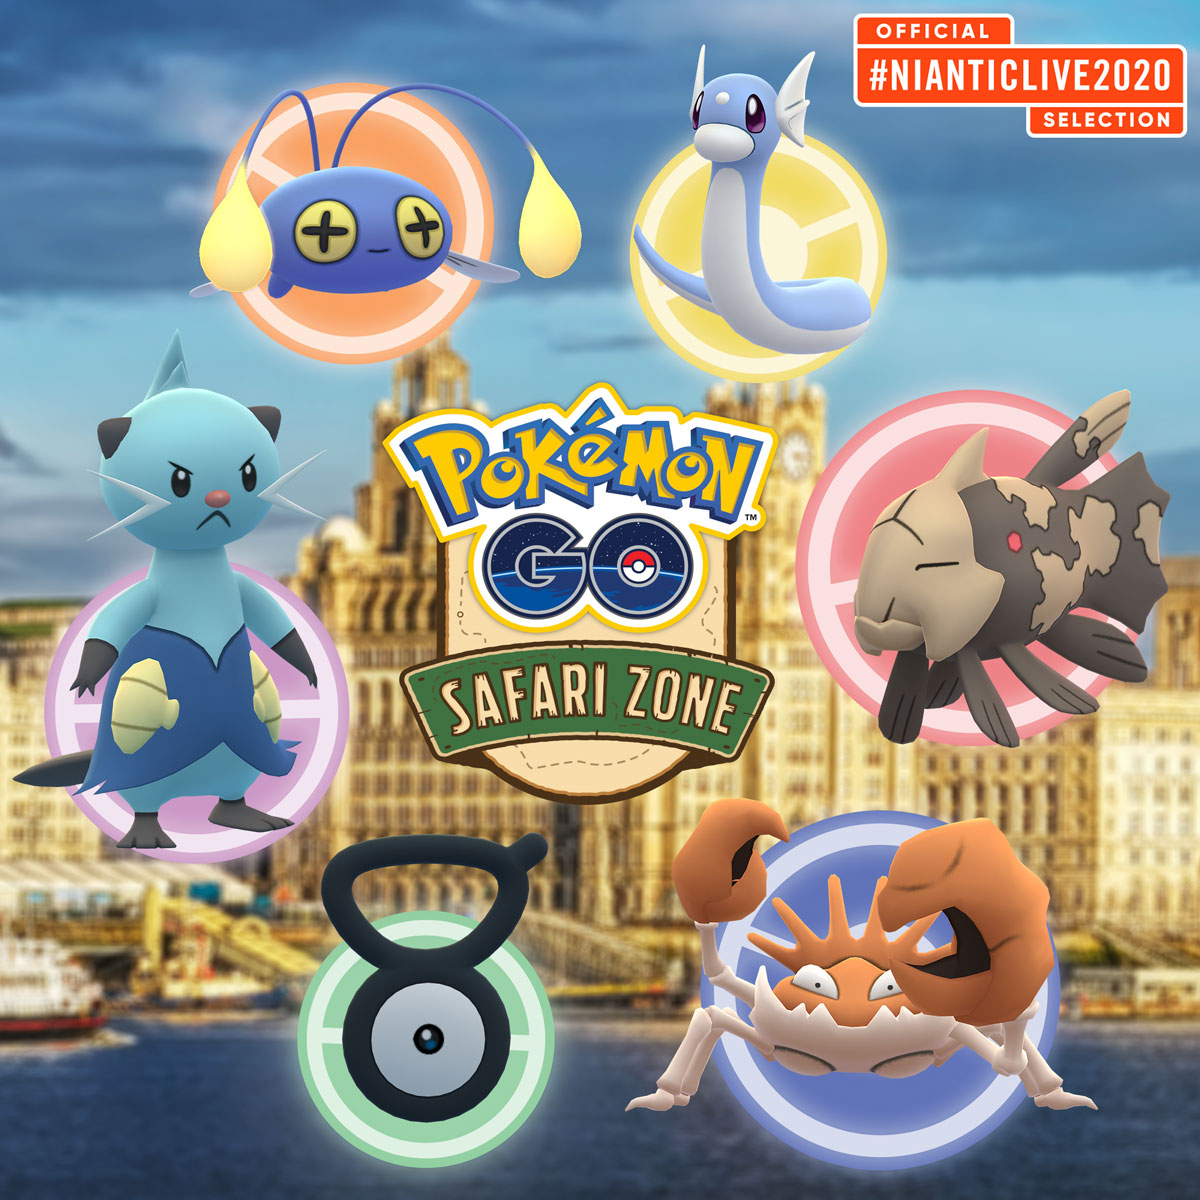 Pokemon Go Safari Zone Liverpool Pokemon Go